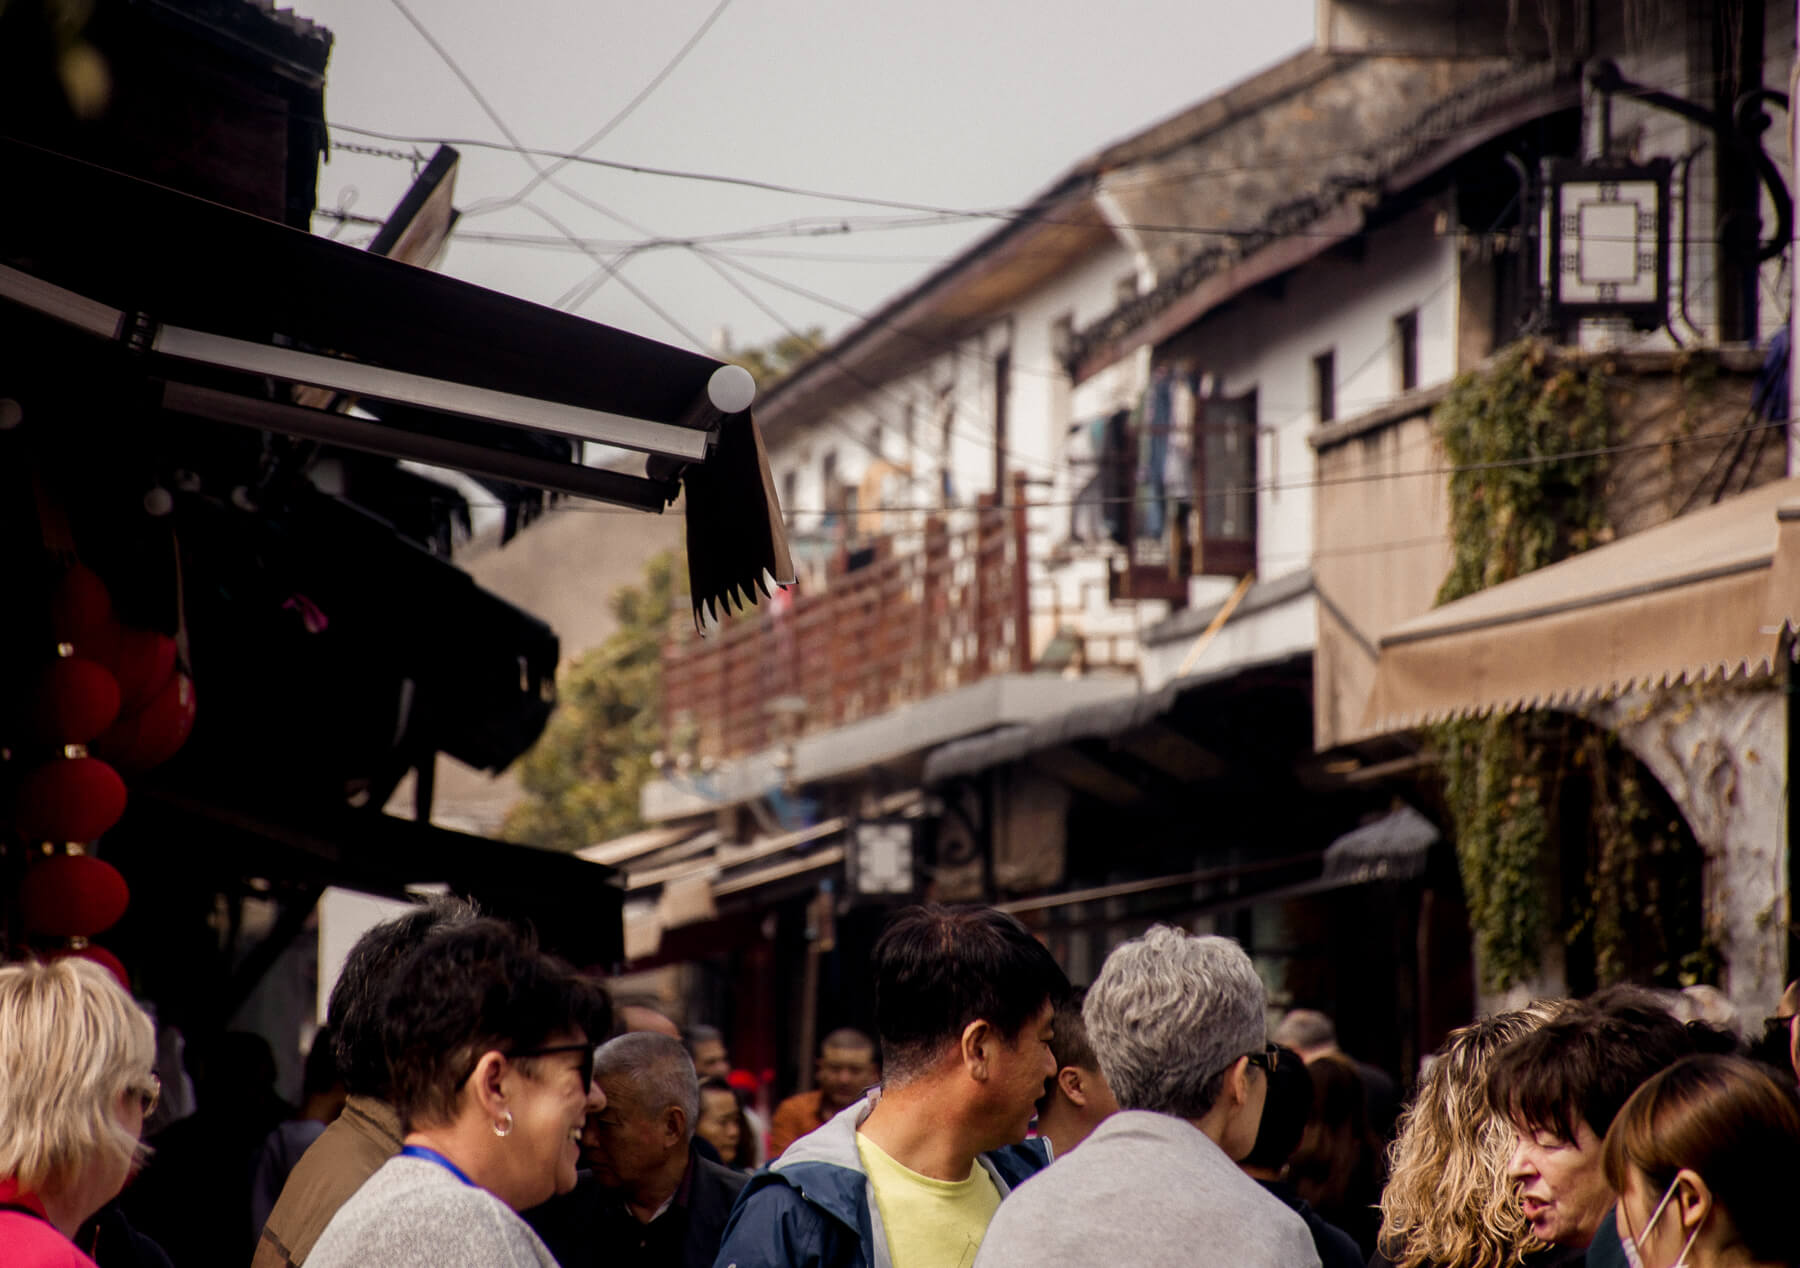 Locals and tourists walking the streets of the old city of Suzhou